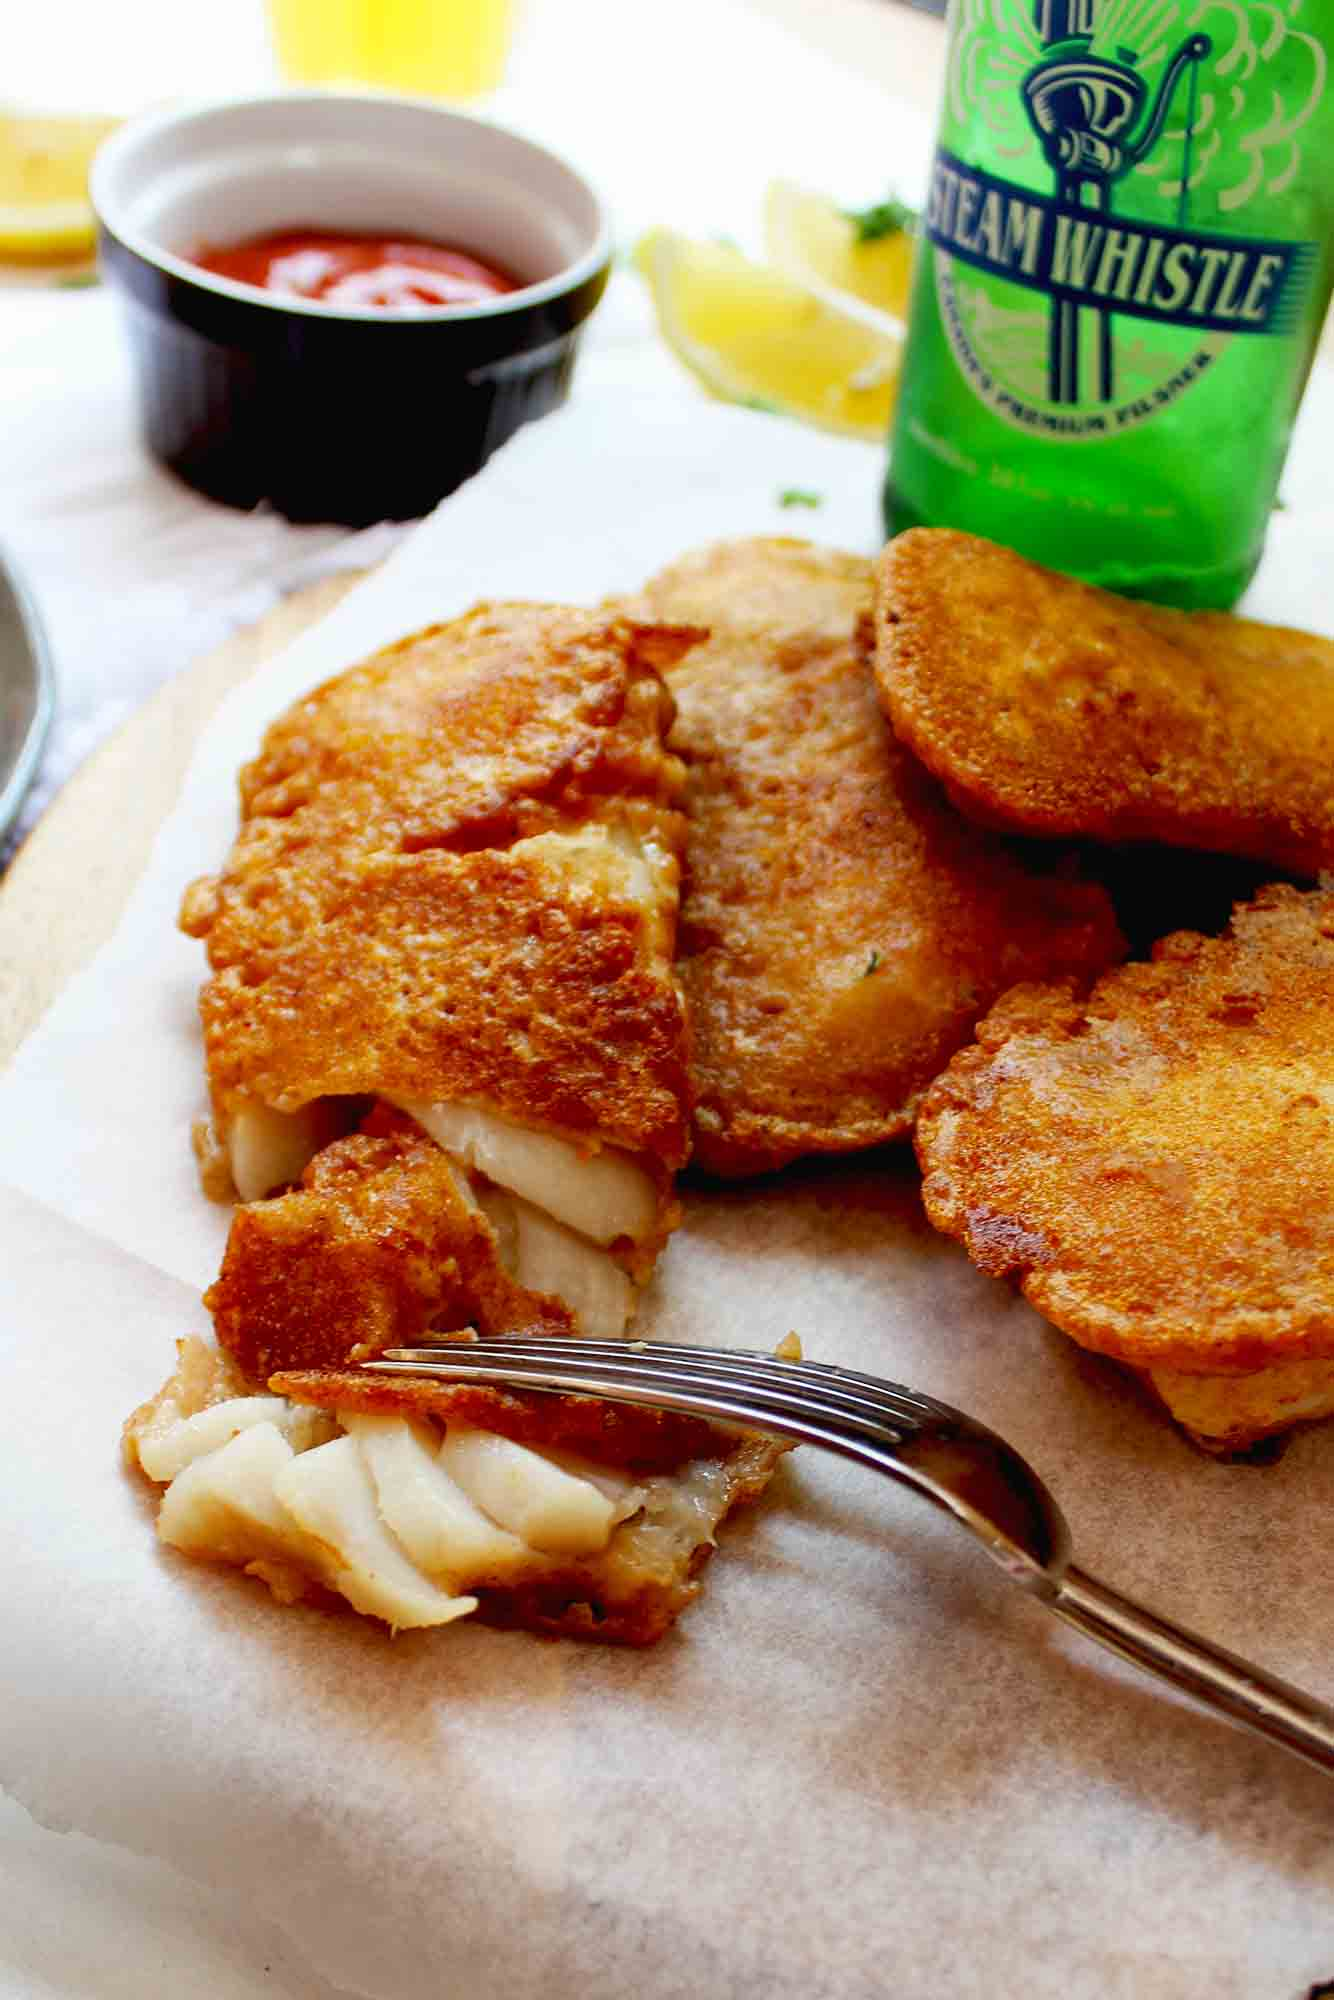 Steam Whistle Battered Fish & Chips with Dijon Caper Tartar Sauce5 min read